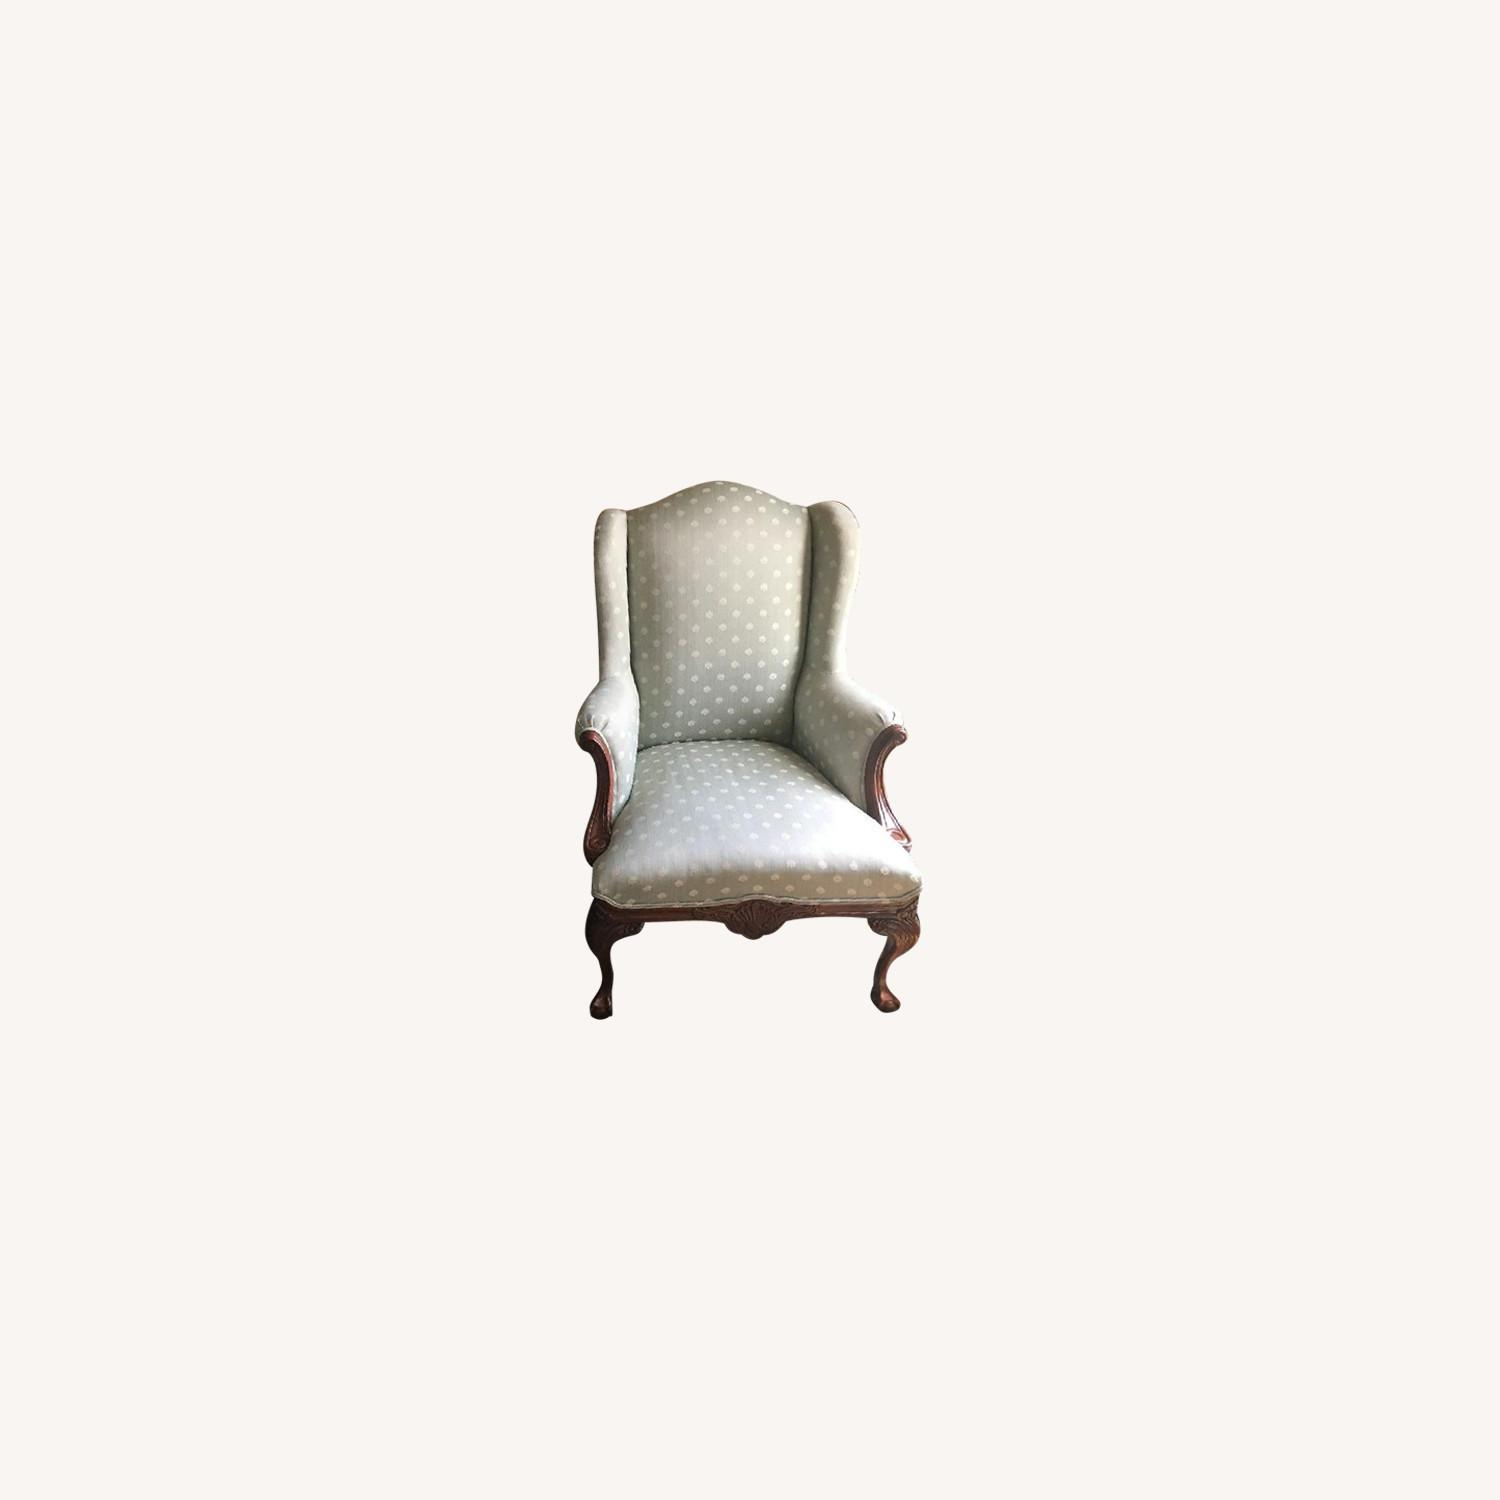 Thomasville Upholstered Arm Chairs - image-0